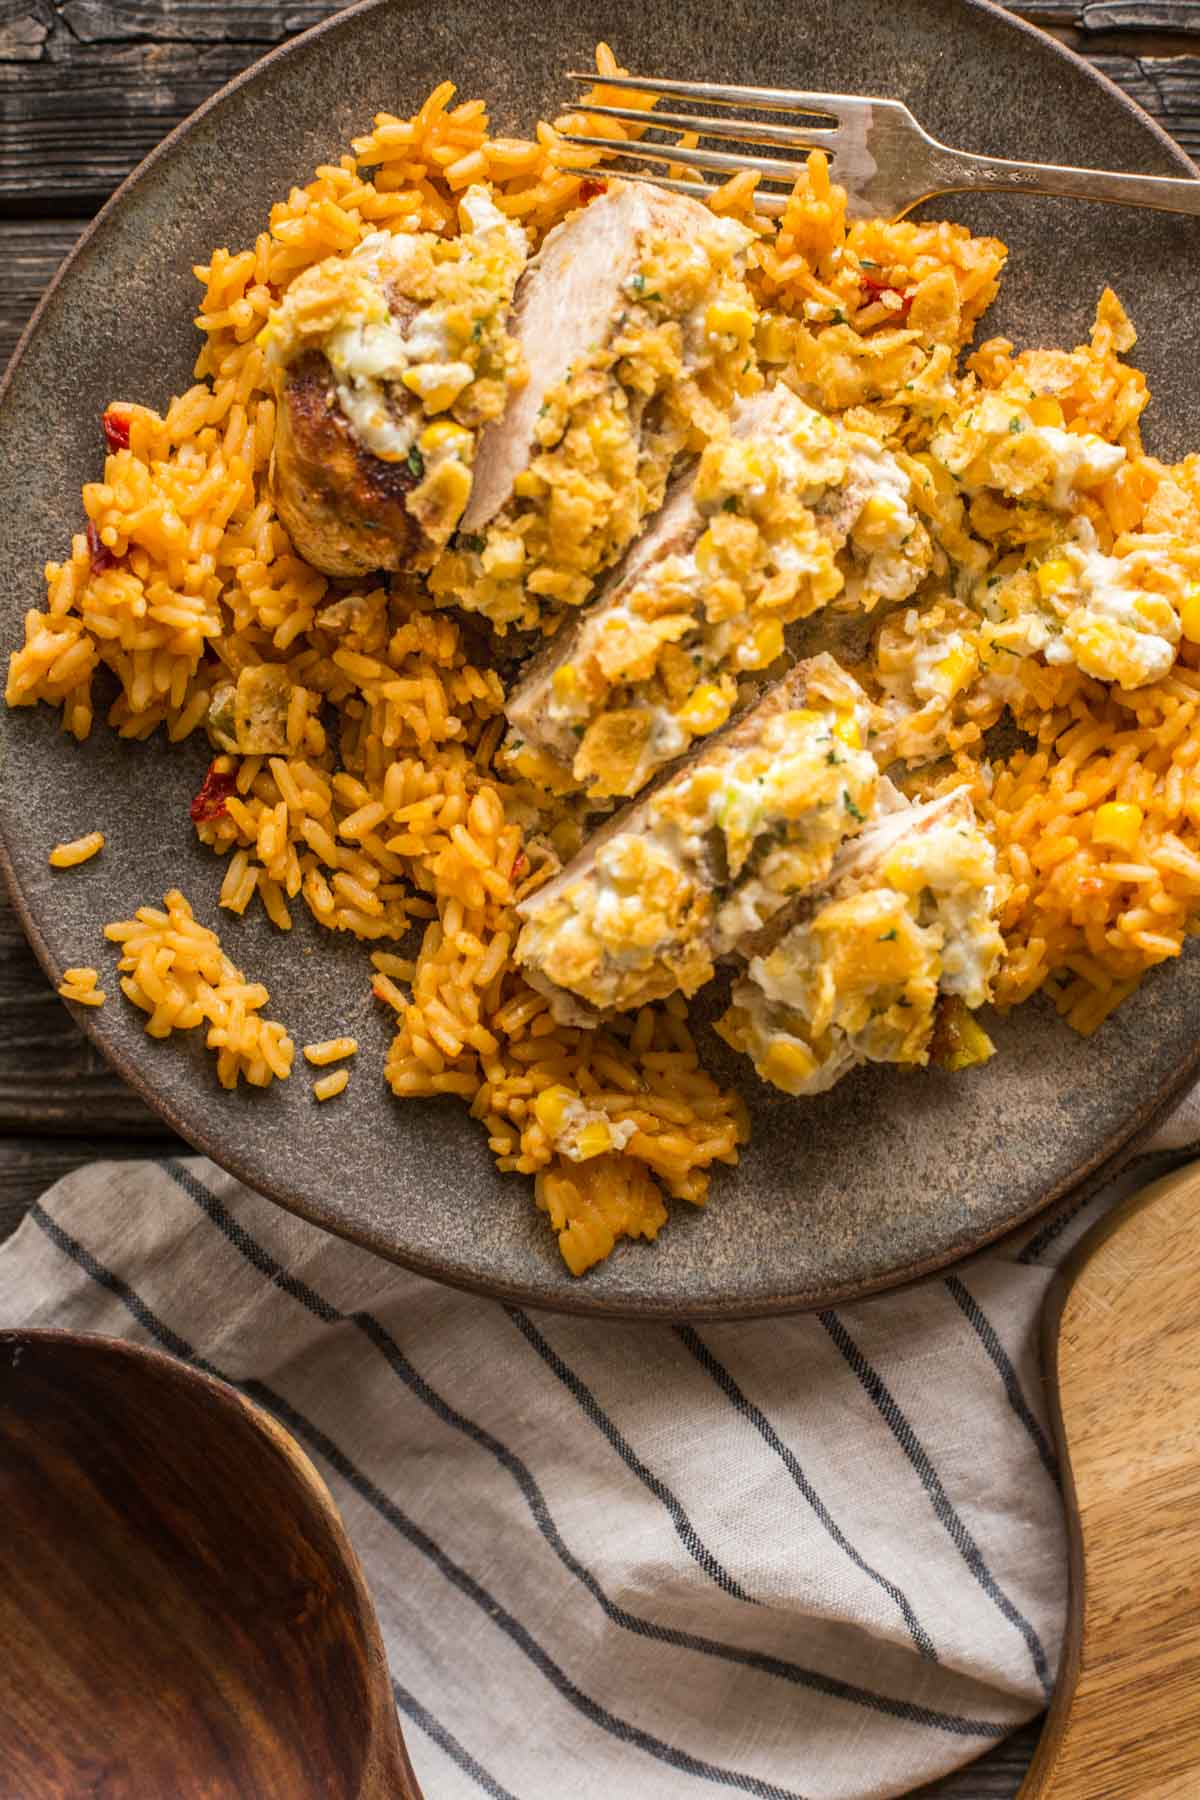 Sliced Creamy Cheesy Frito Chicken Skillet served on a bed of rice.